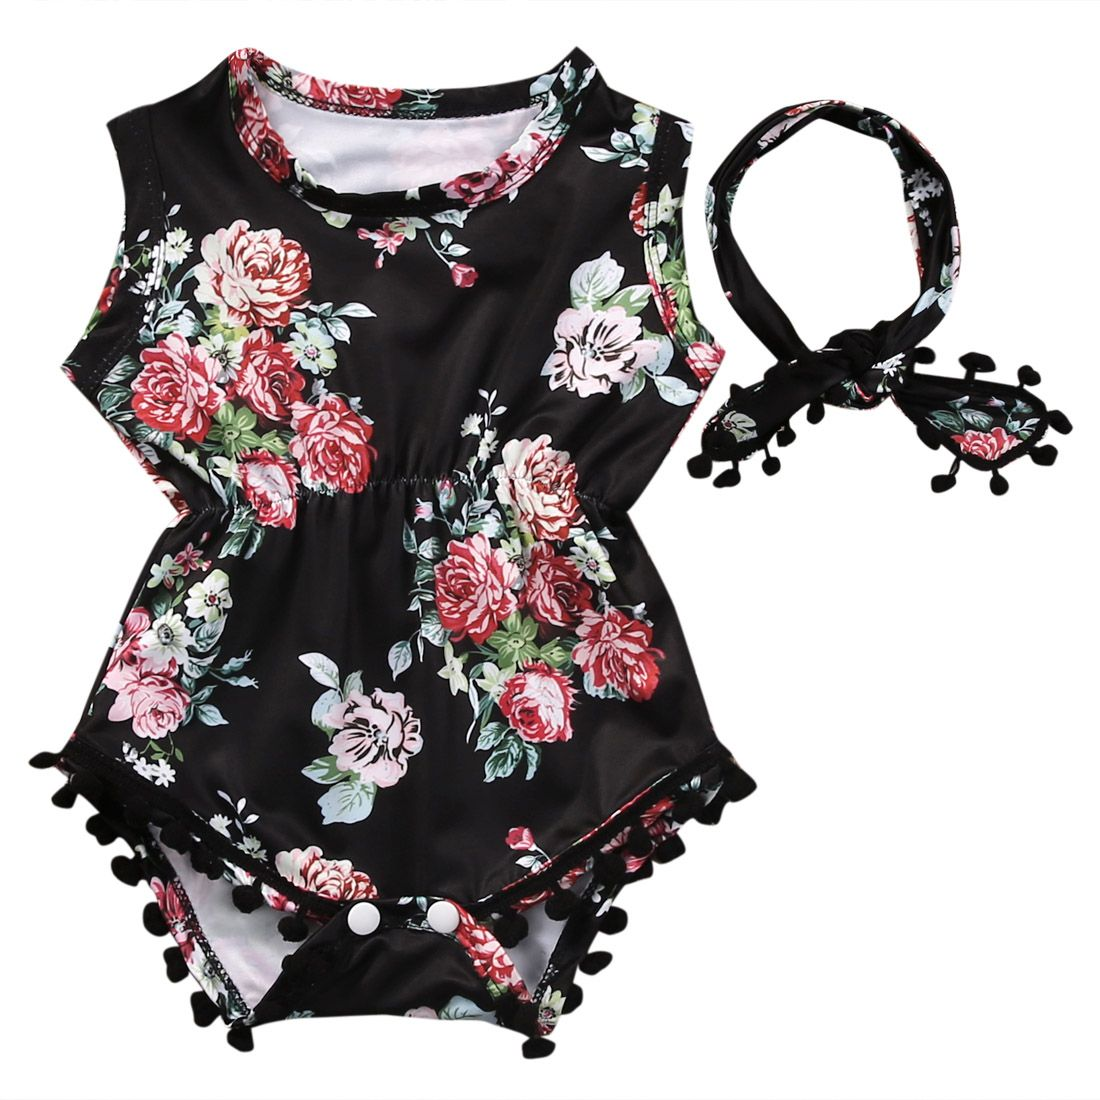 47e8089f8 Awesome Lovely Baby Girl Romper Clothes 2017 Summer Floral Tassel Bodysuit  Jumpsuit +Headband 2PCS Outfit Sunsuit Tracksuit Clothing Set - $9.69 - Buy  it ...